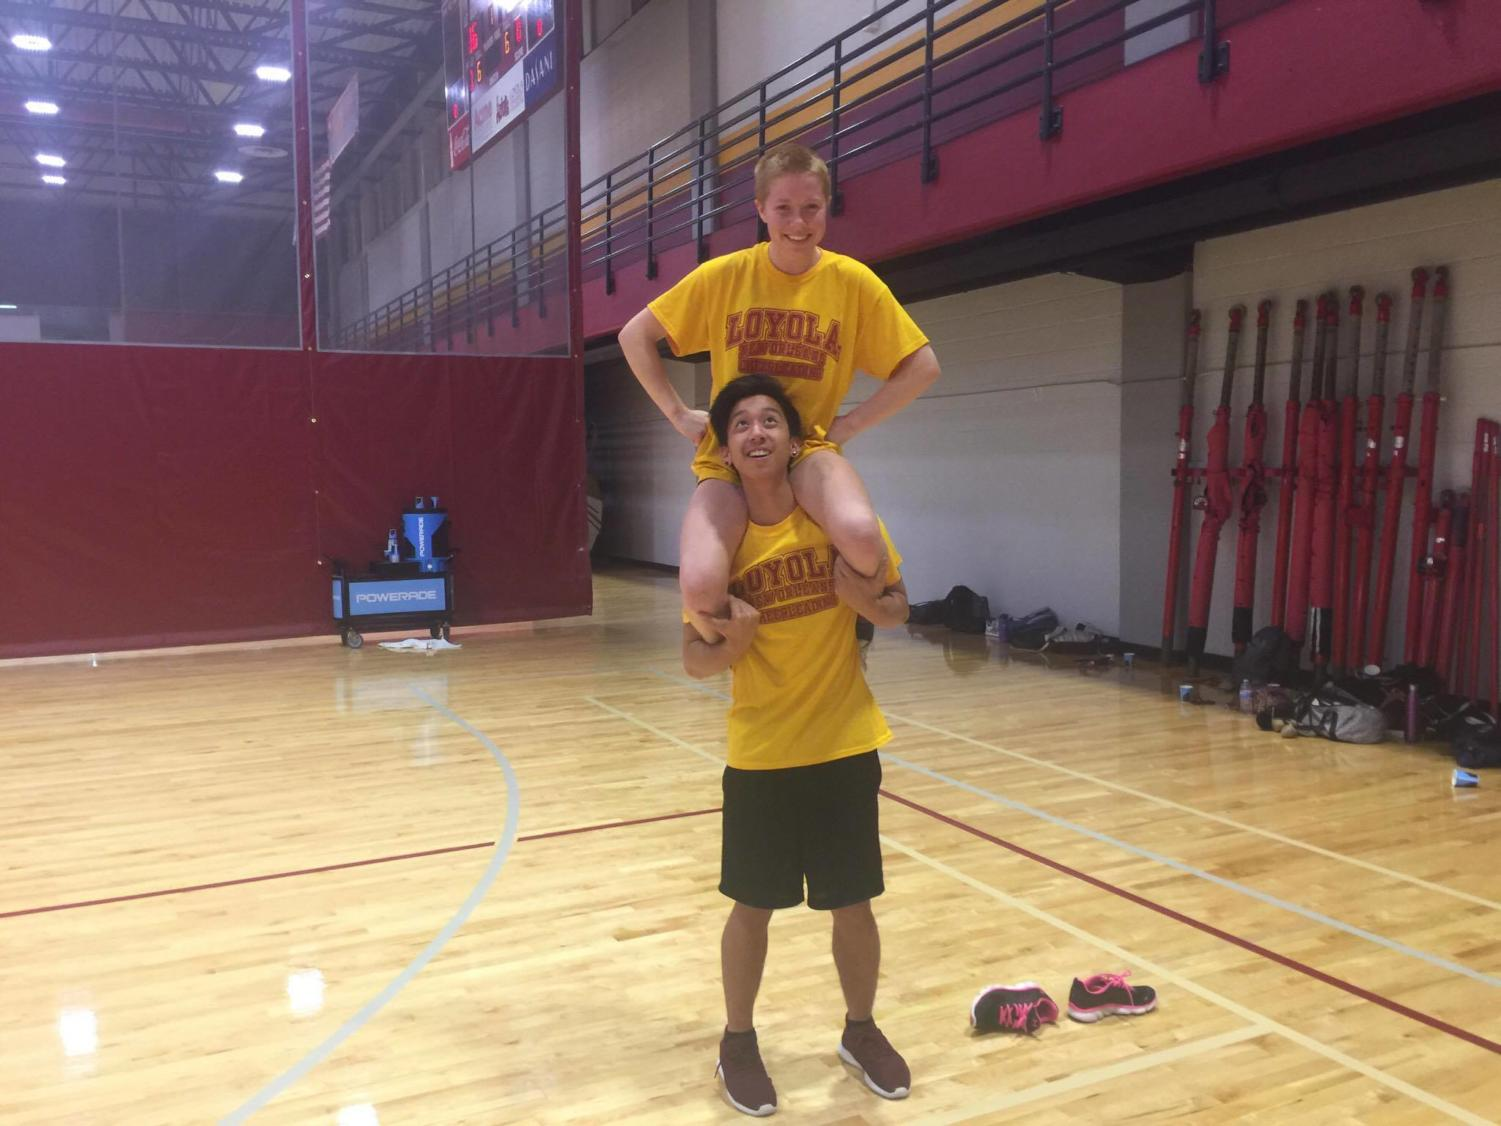 Sports editor JC Canicosa tries out the sport of cheerleading. Certainly, this can only go well.